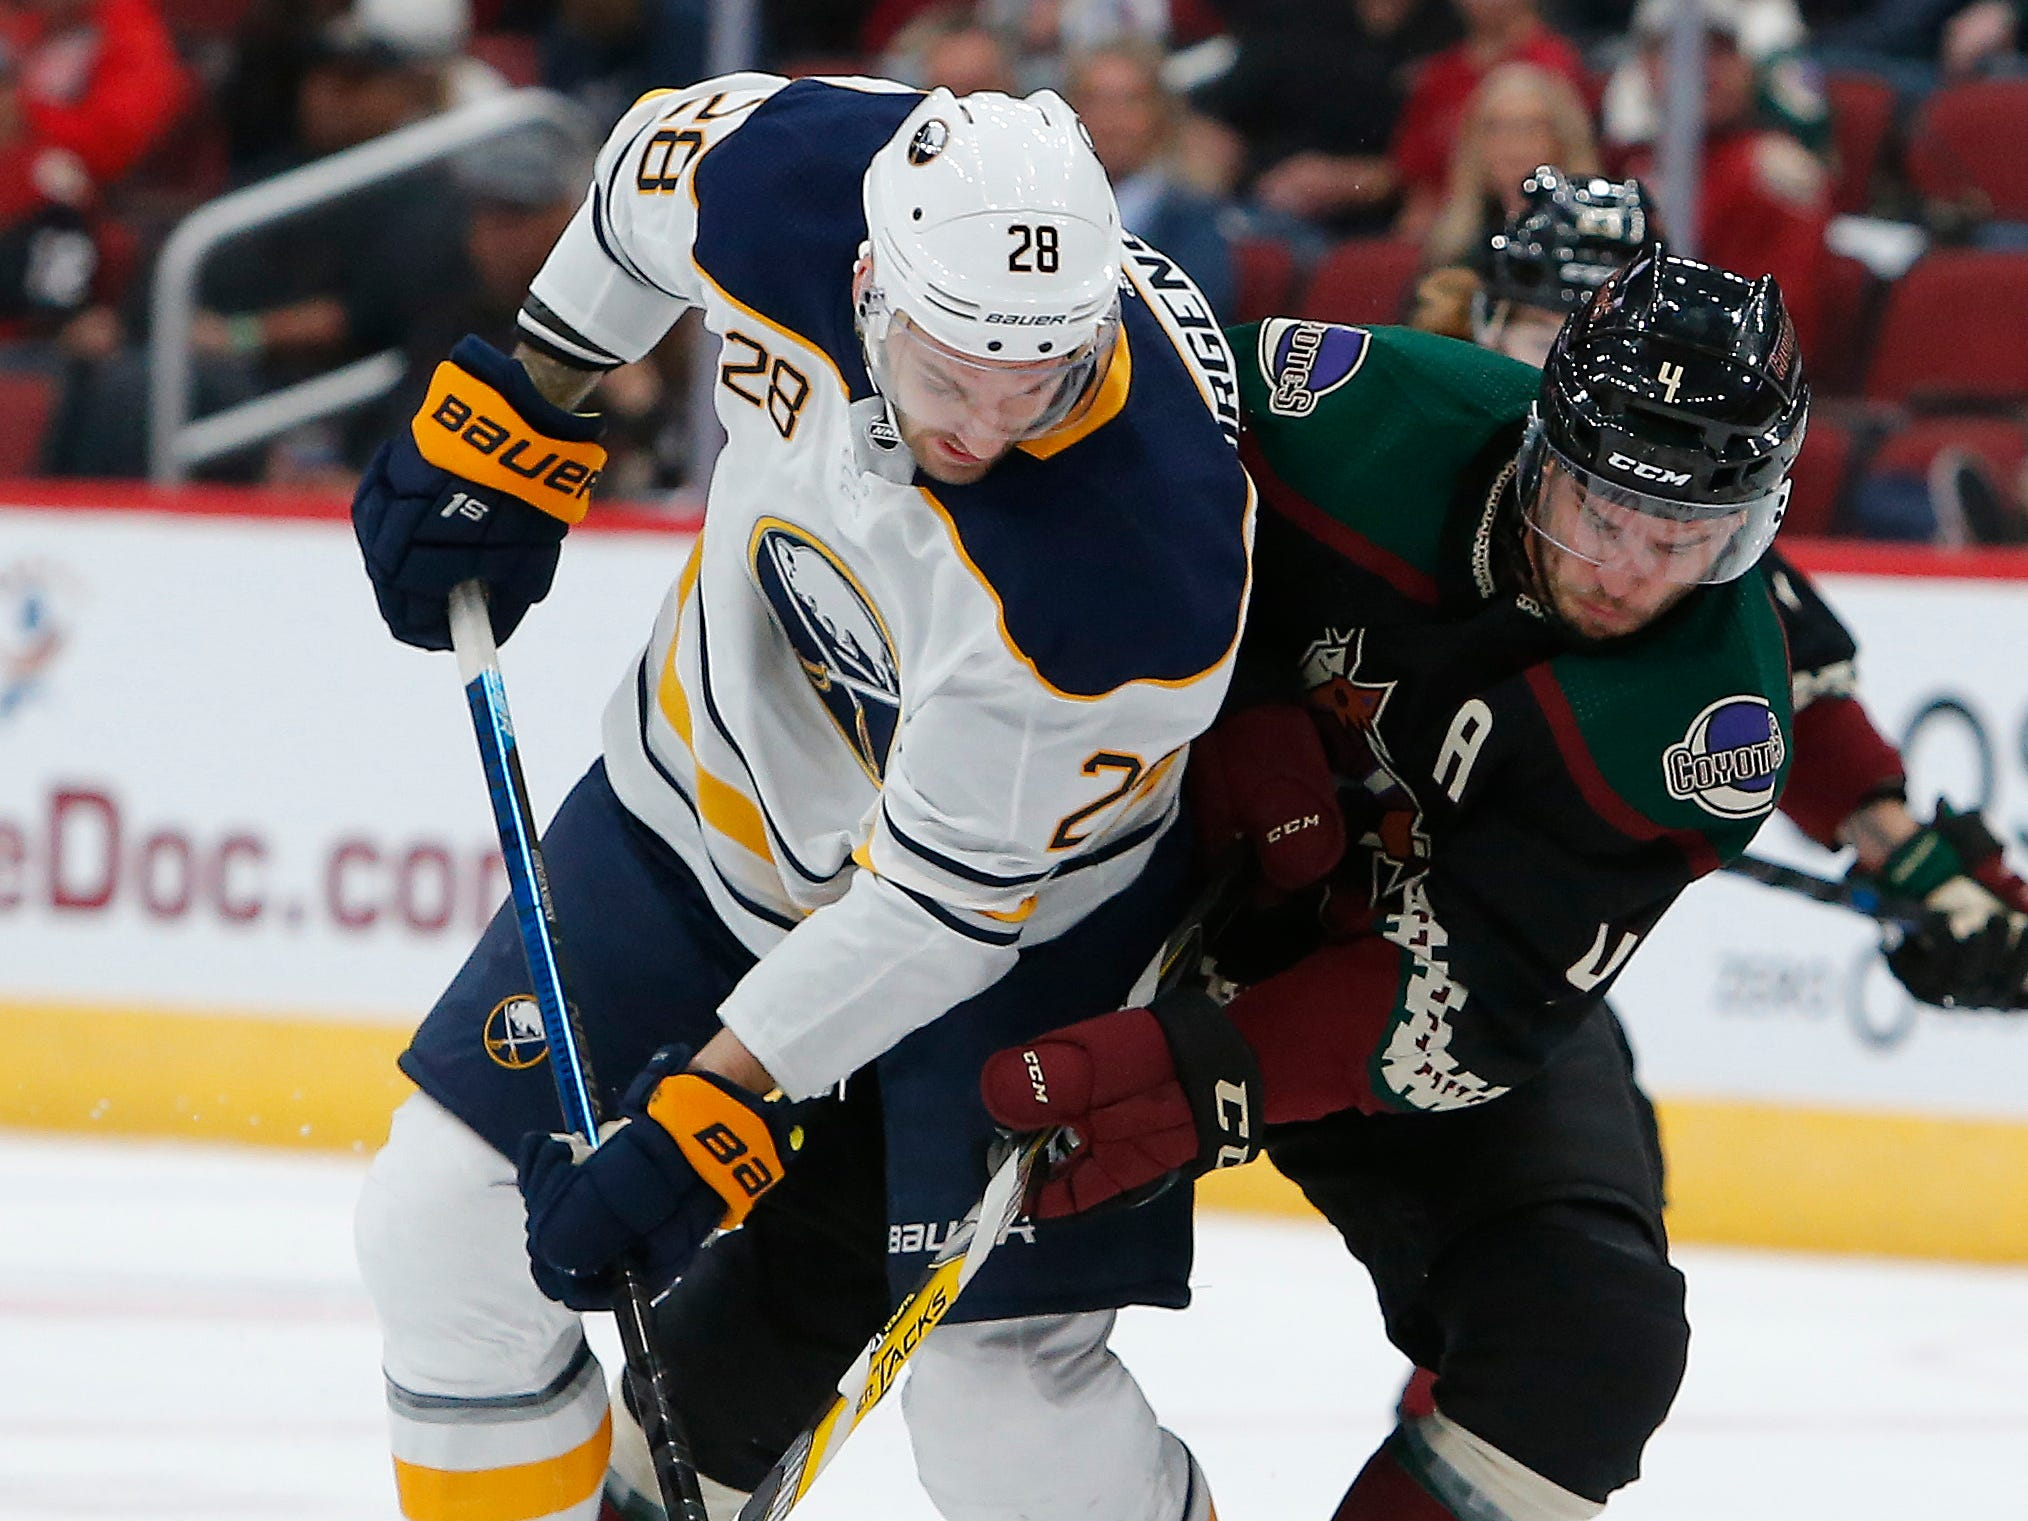 Buffalo Sabres center Zemgus Girgensons (28) and Arizona Coyotes defenseman Niklas Hjalmarsson battle for the puck and in the first period during an NHL hockey game, Saturday, Oct. 13, 2018, in Glendale, Ariz.